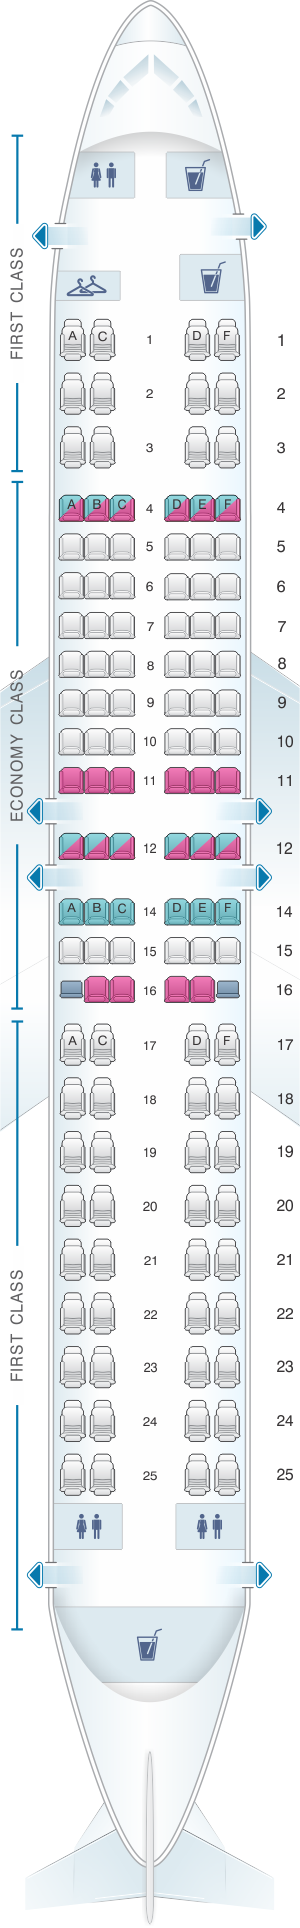 Seat map for Miami Air Boeing B737 800 Config. 1